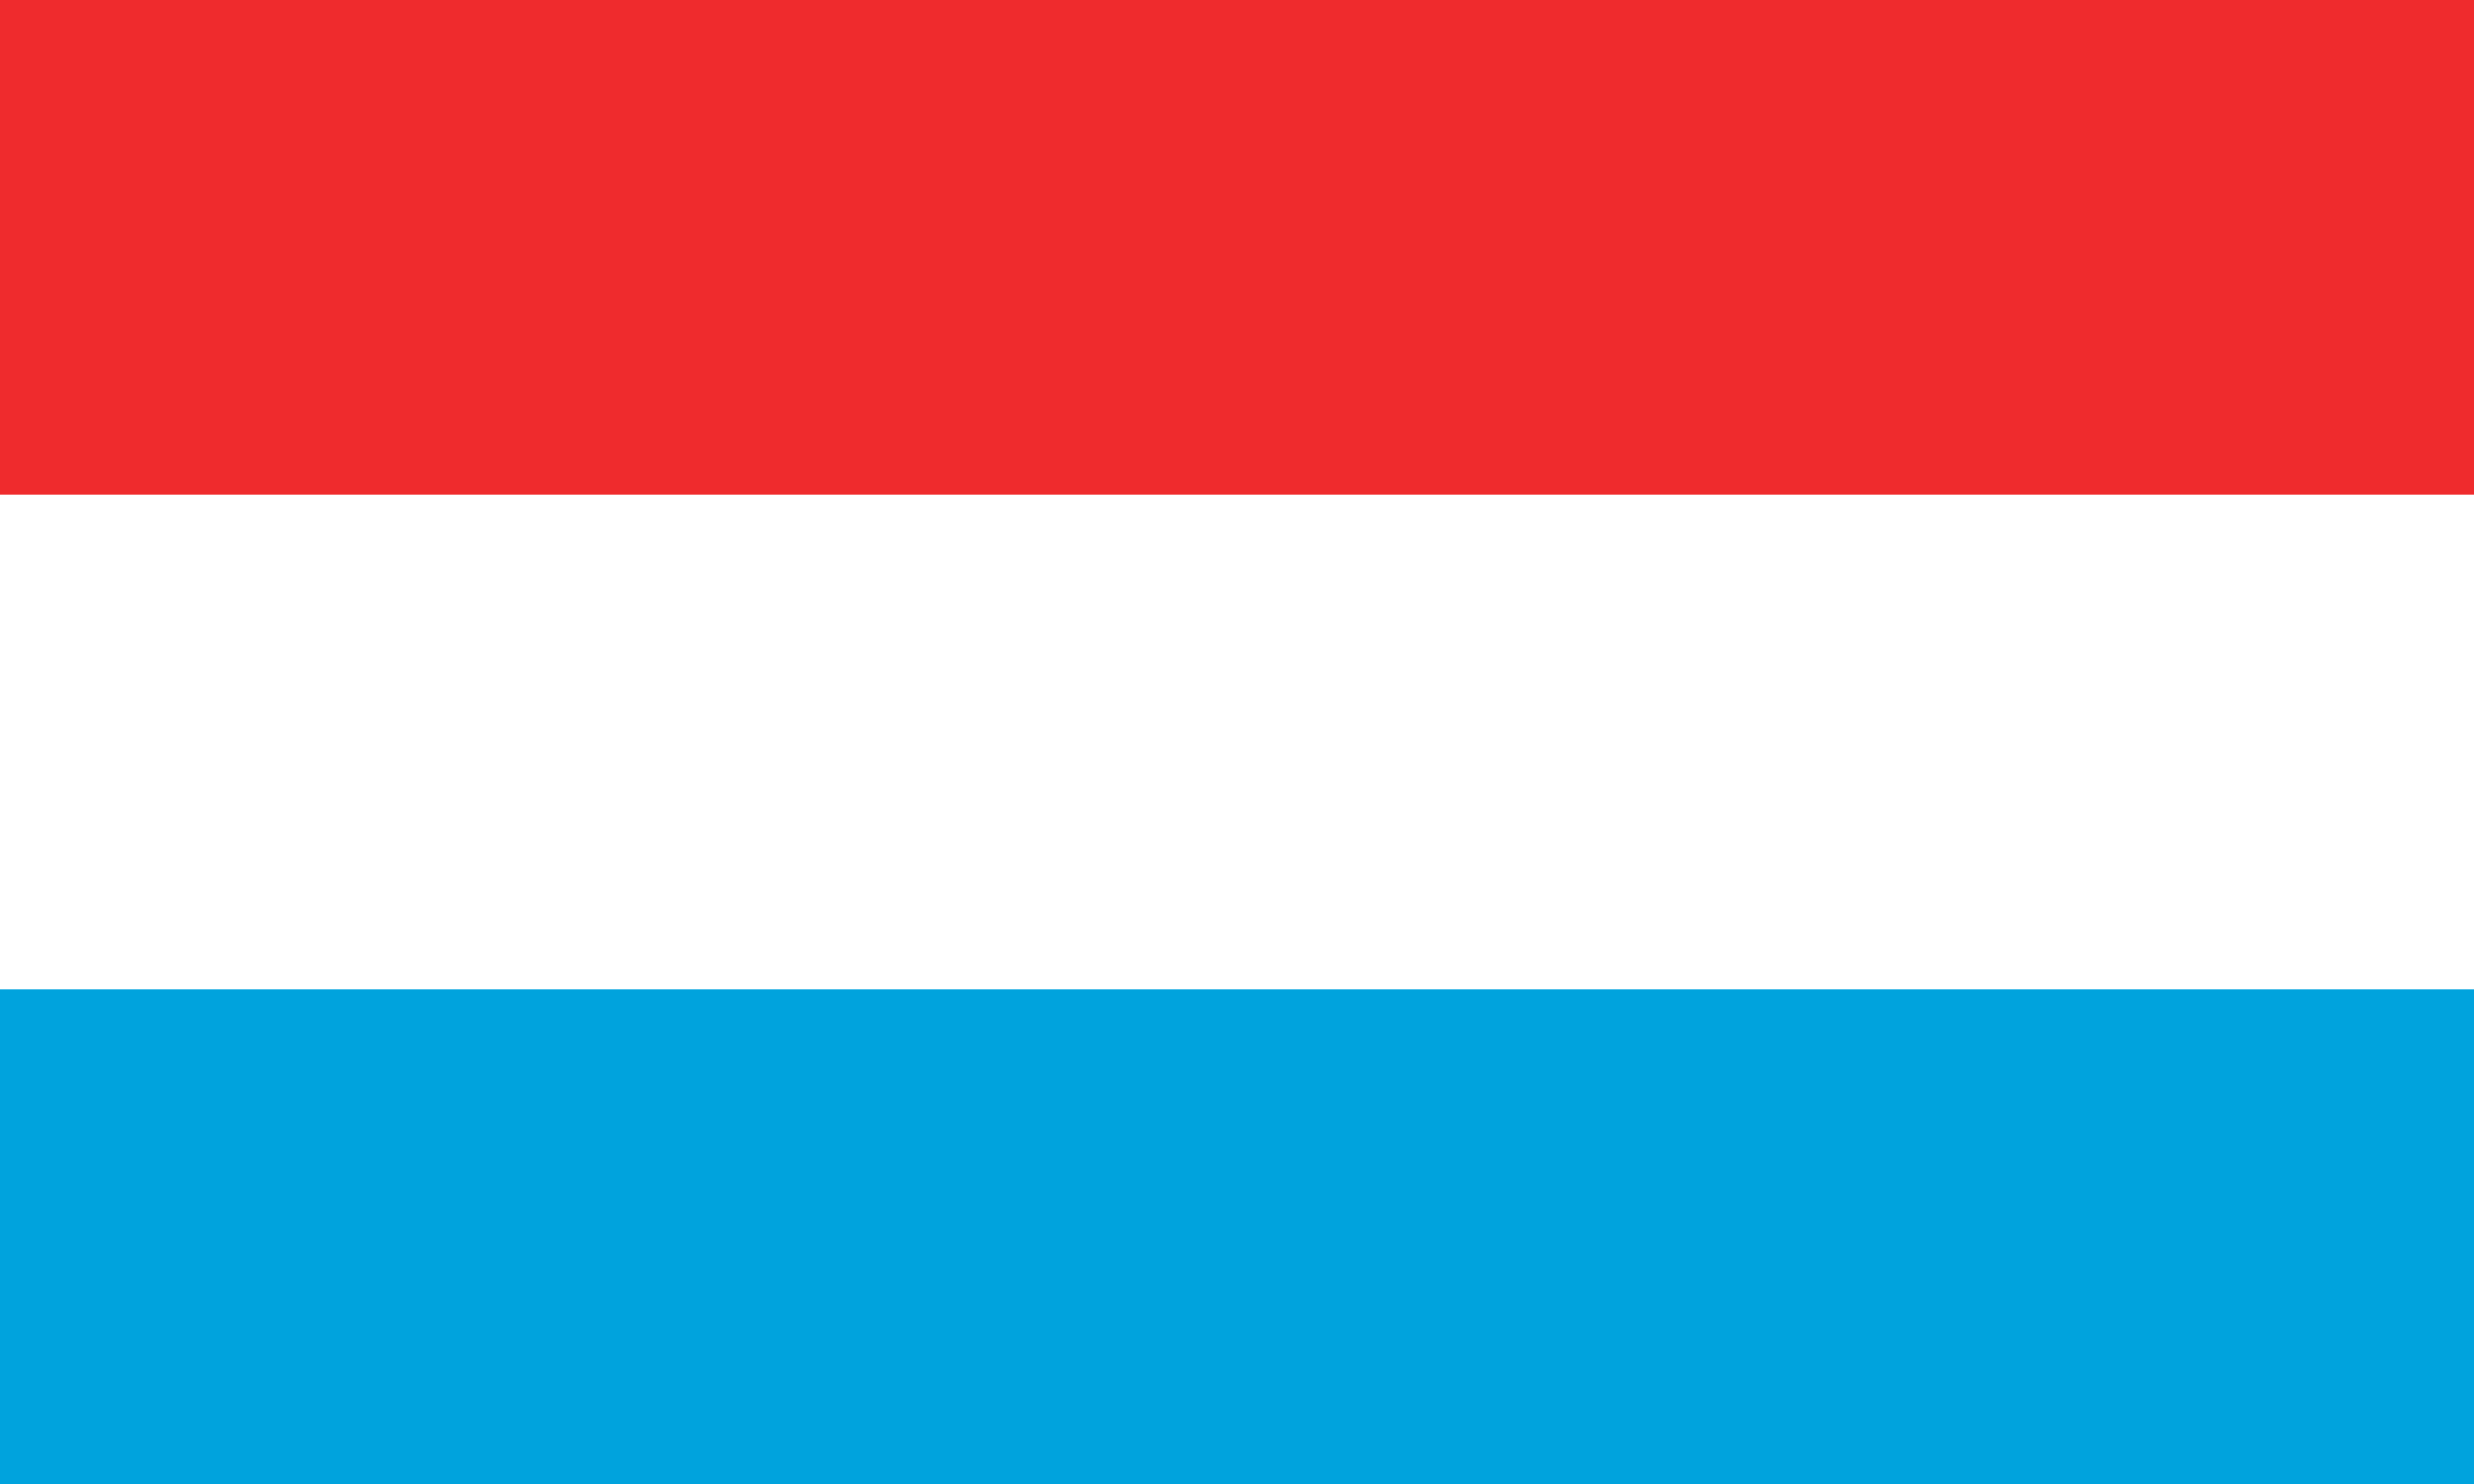 Flag of Luxembourg | Find the best design for Luxembourgers Flag